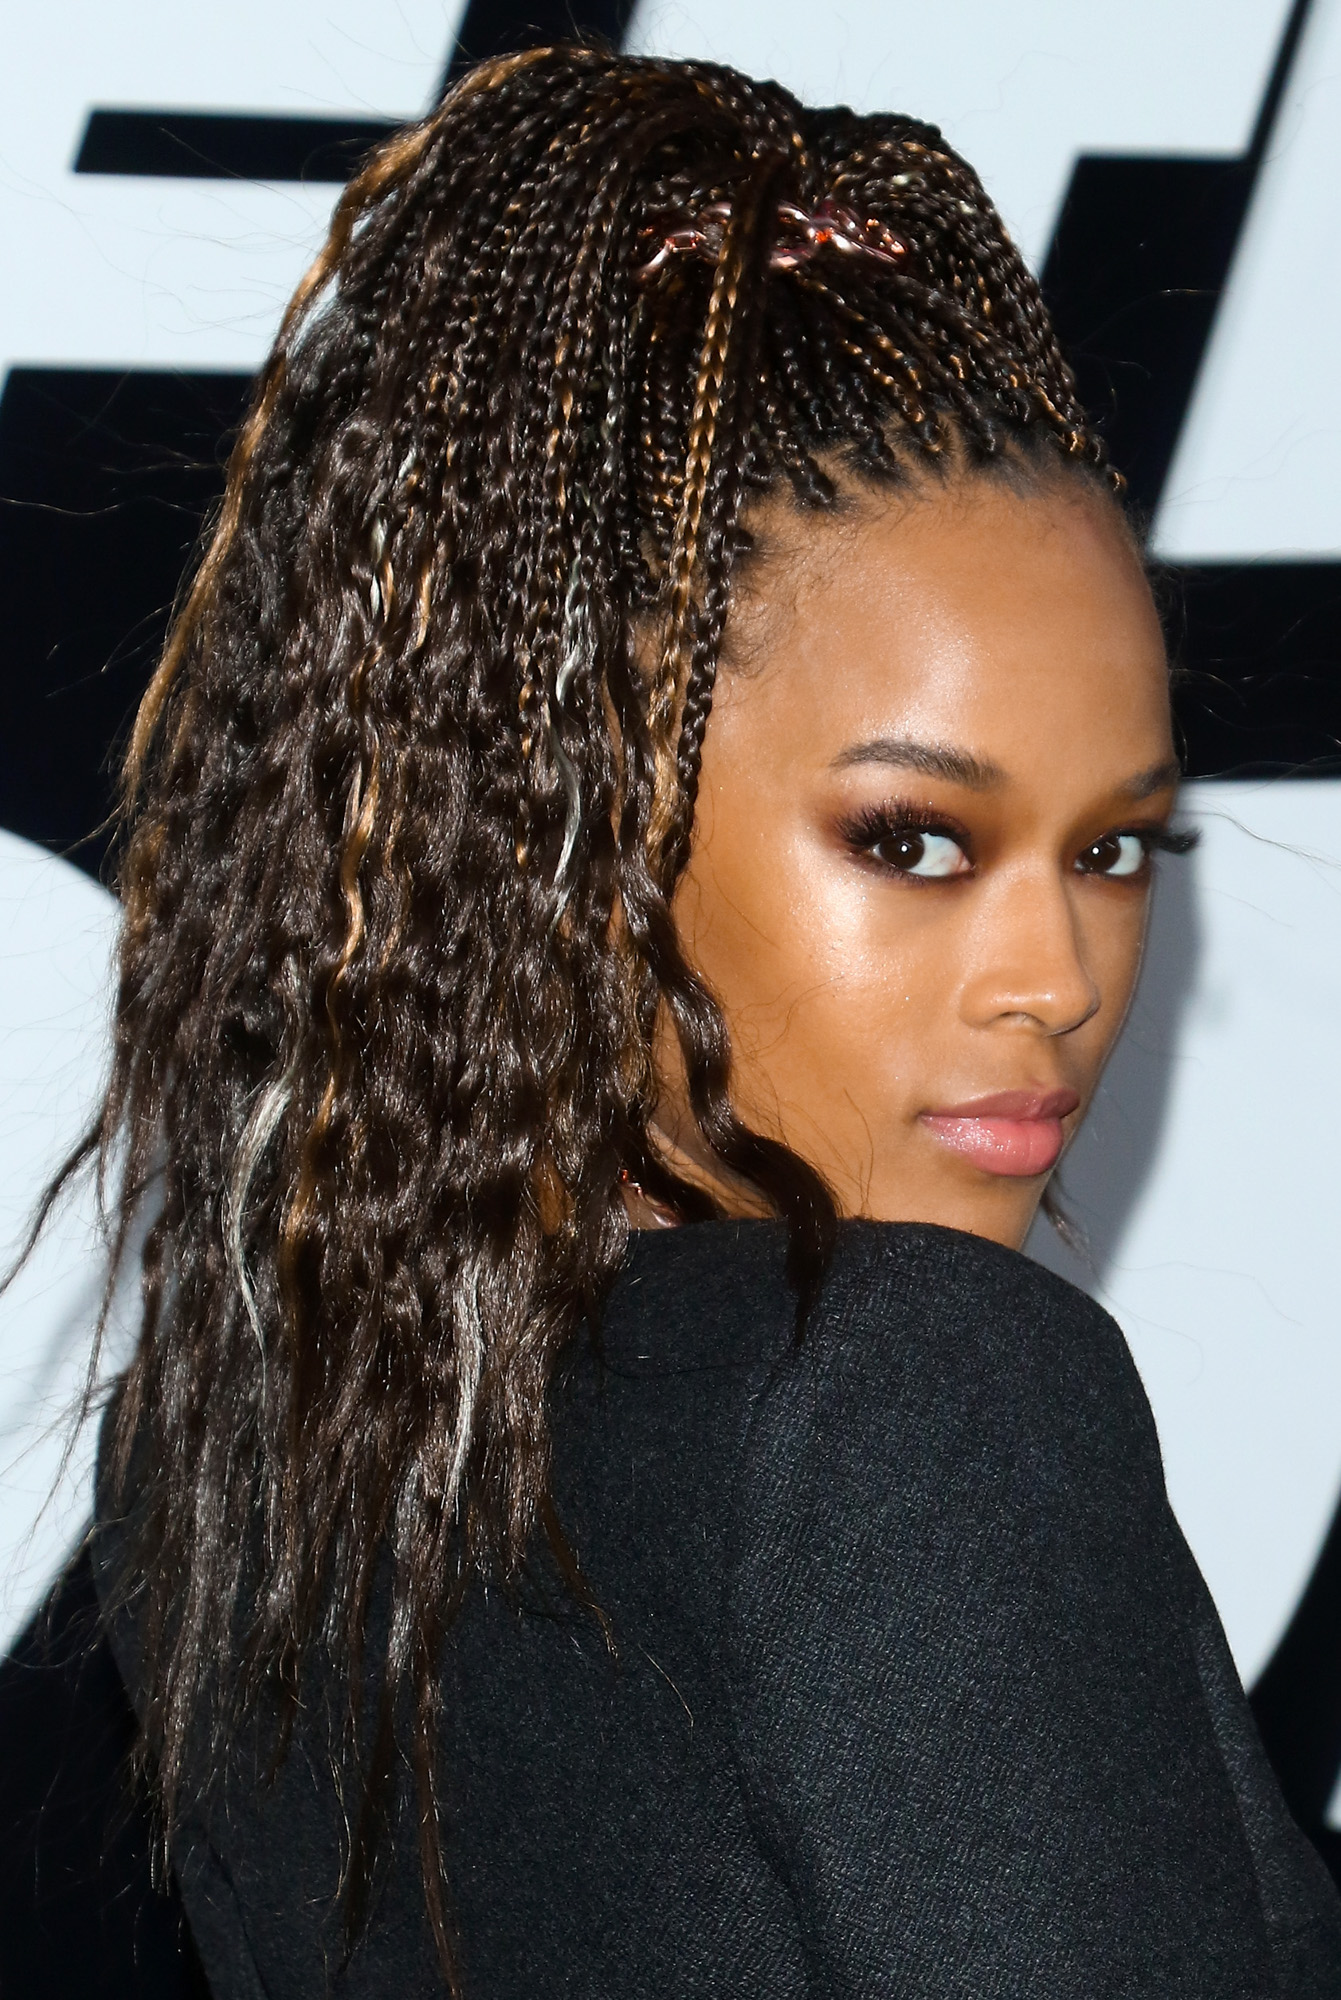 26 Braided Hairstyles for Spring 2017 - Cute Braided ...